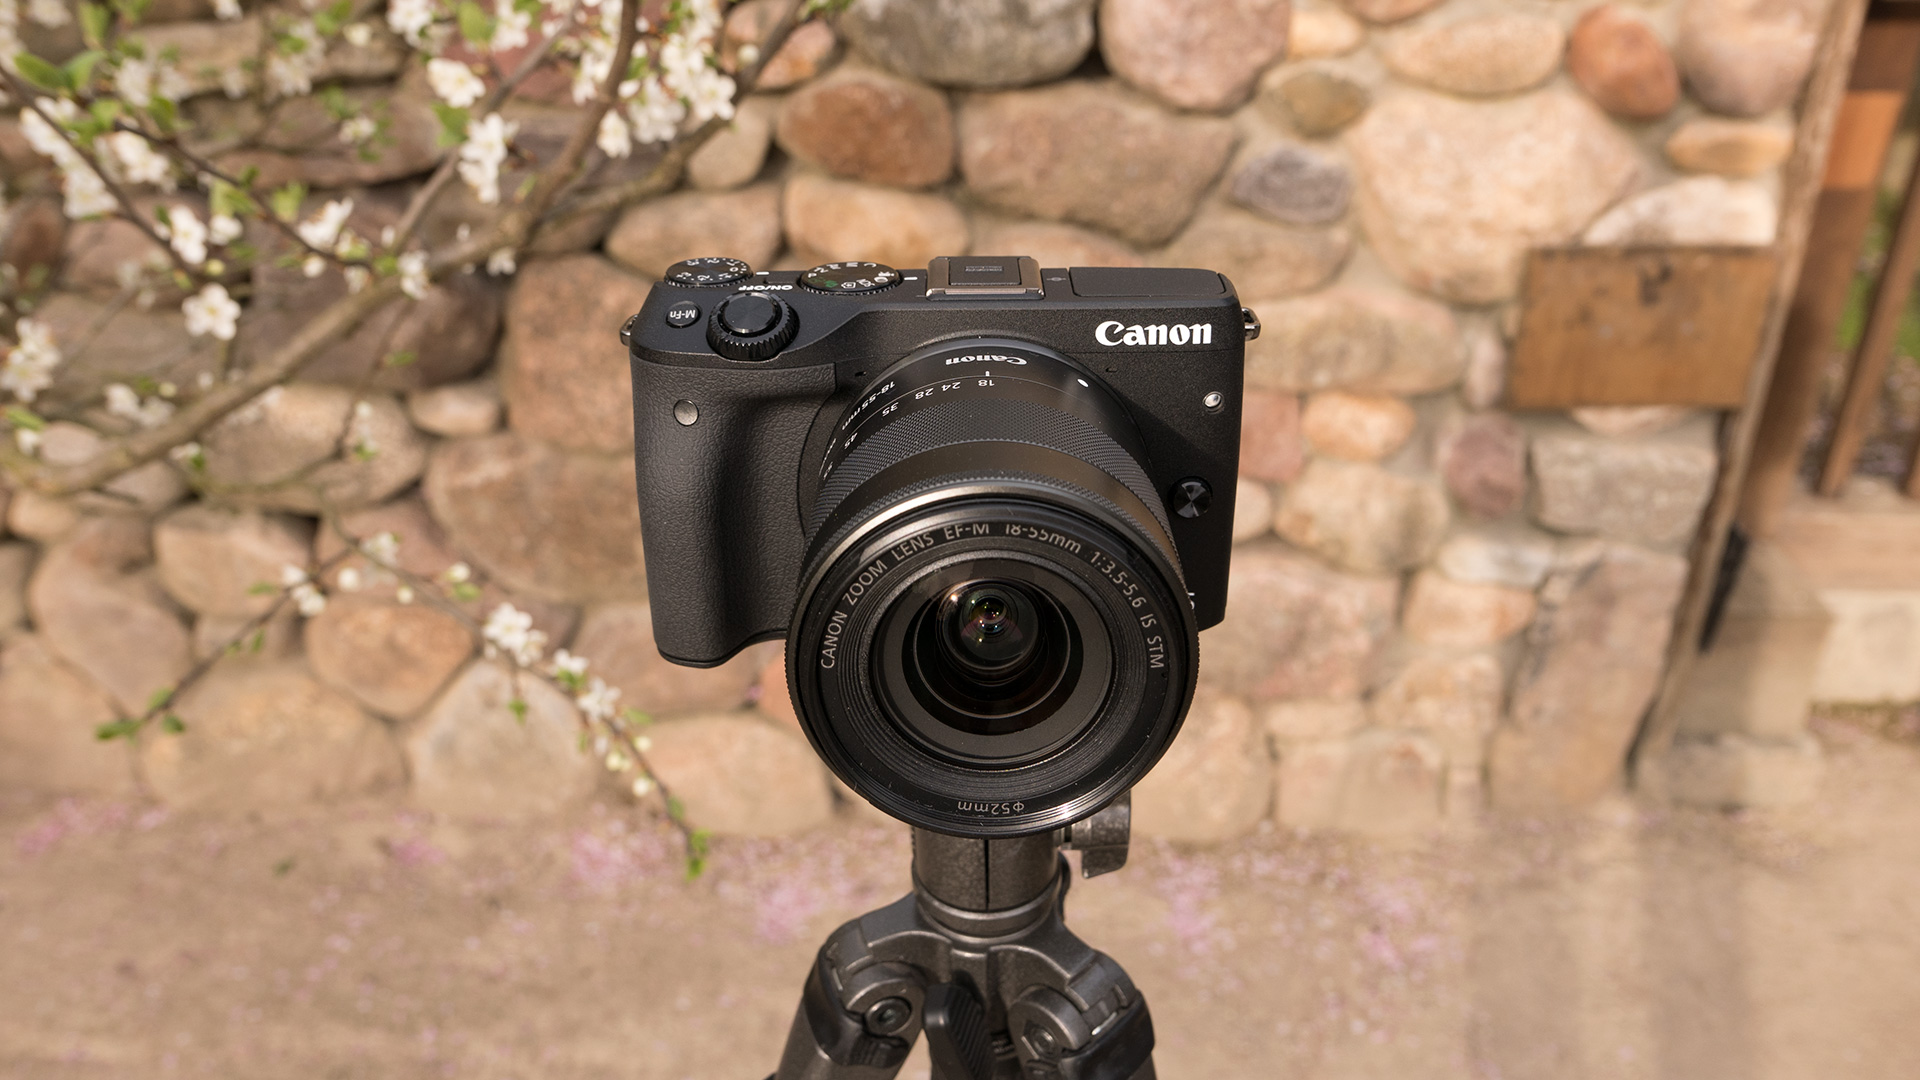 Canon EOS M3 Review - new video quality?